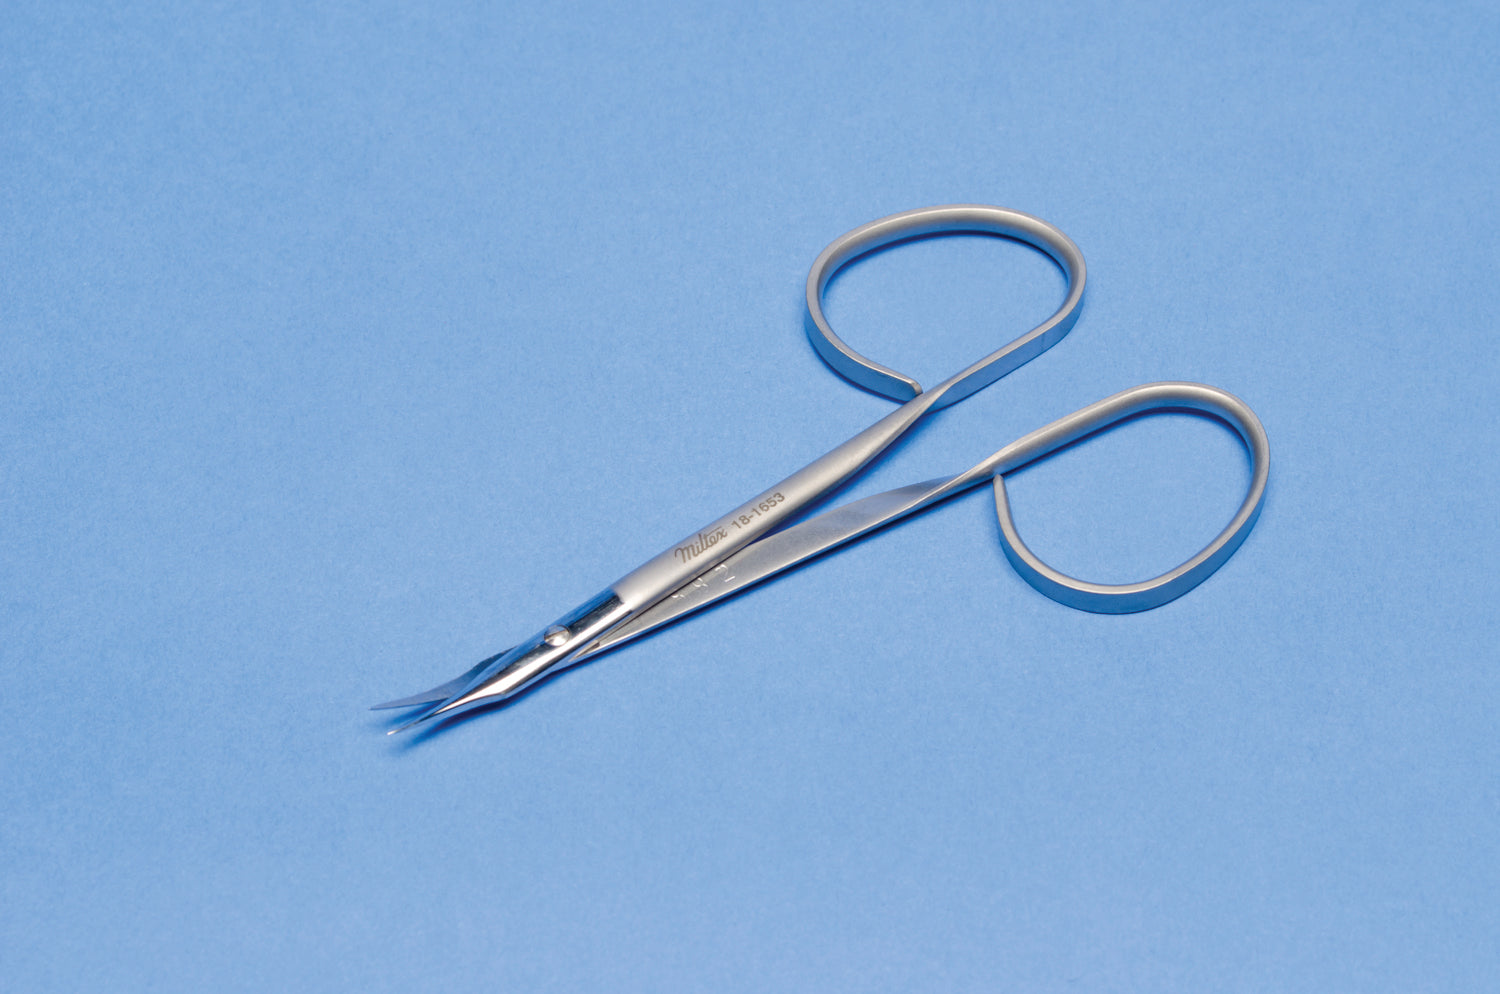 Eye Suture Scissors (M181653)-Pro-Optics LLC